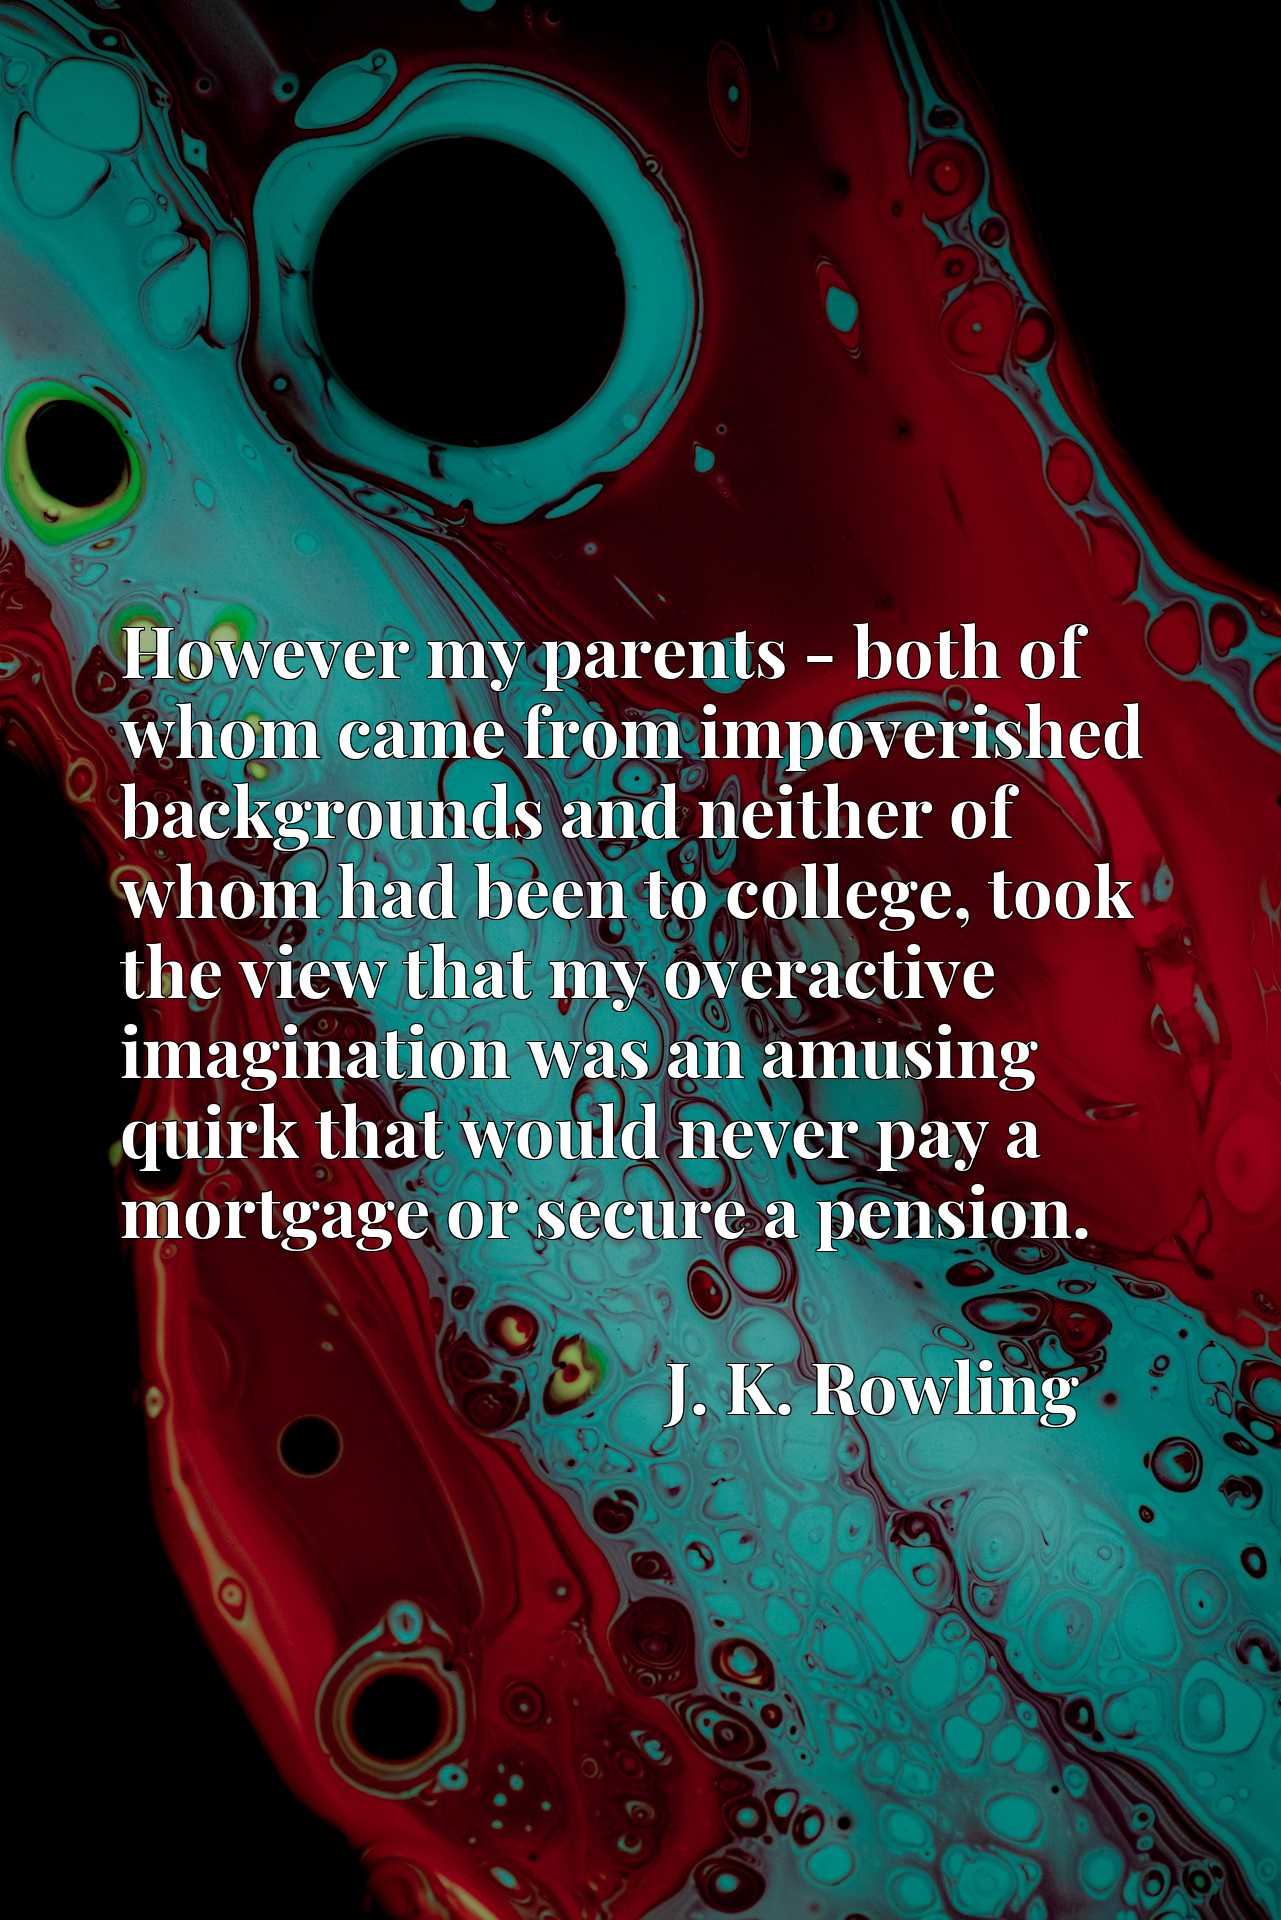 Quote Picture :However my parents - both of whom came from impoverished backgrounds and neither of whom had been to college, took the view that my overactive imagination was an amusing quirk that would never pay a mortgage or secure a pension.